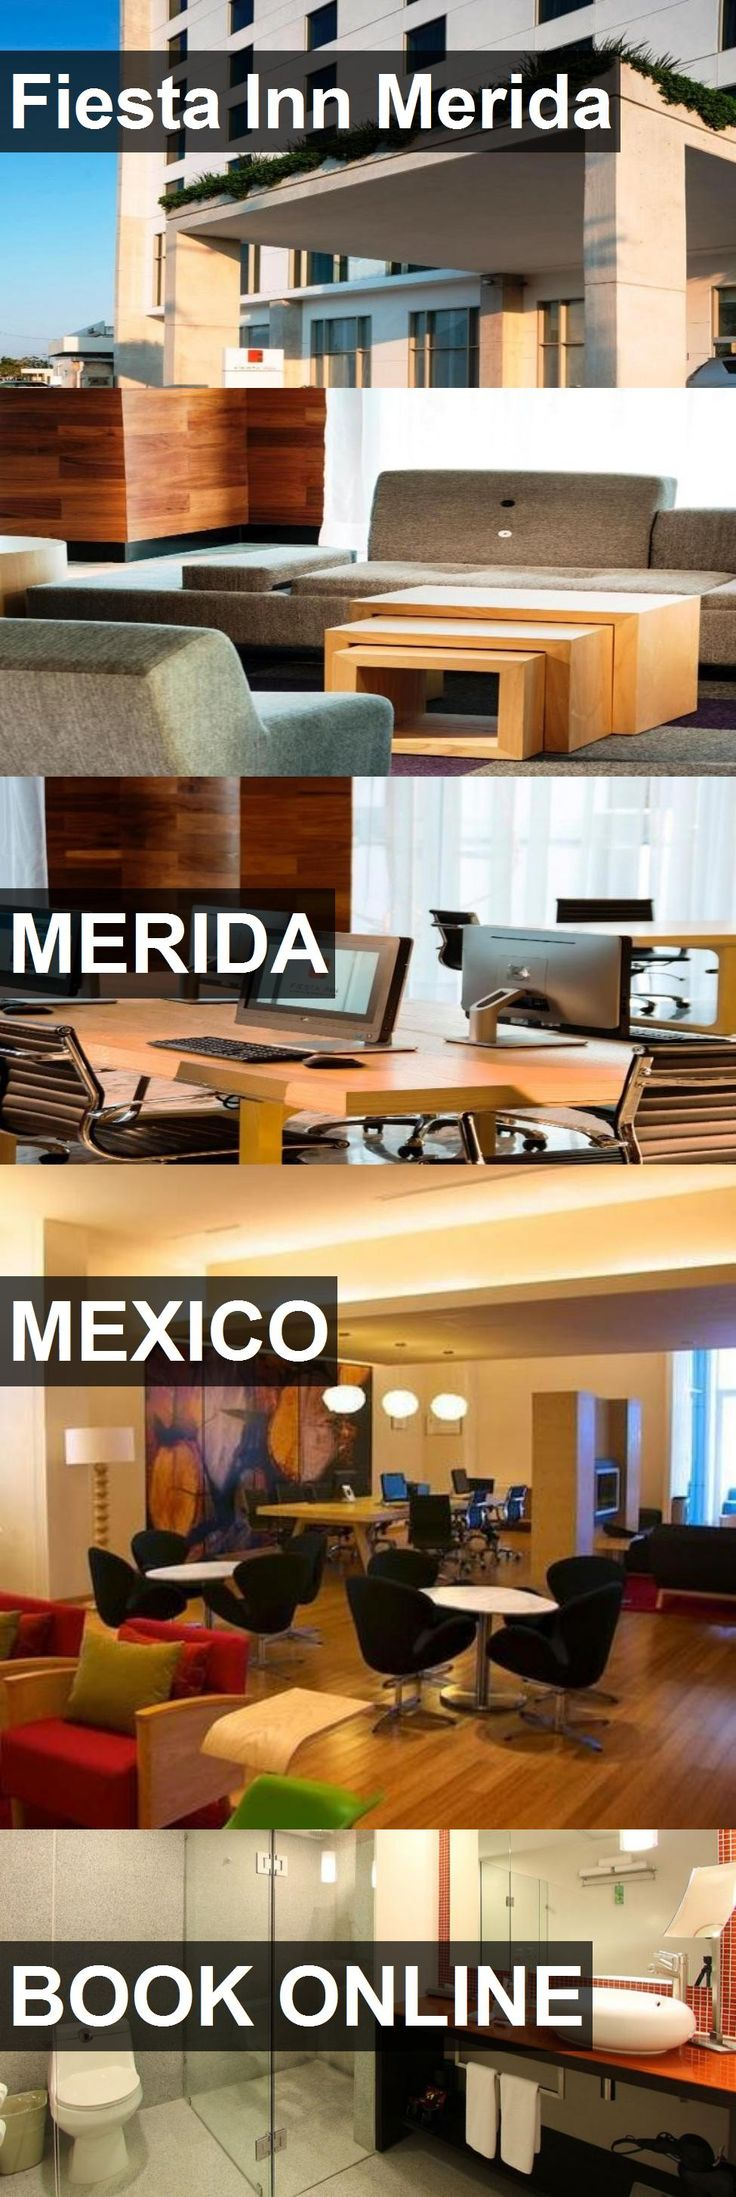 Hotel Fiesta Inn Merida in Merida, Mexico. For more information, photos, reviews and best prices please follow the link. #Mexico #Merida #travel #vacation #hotel